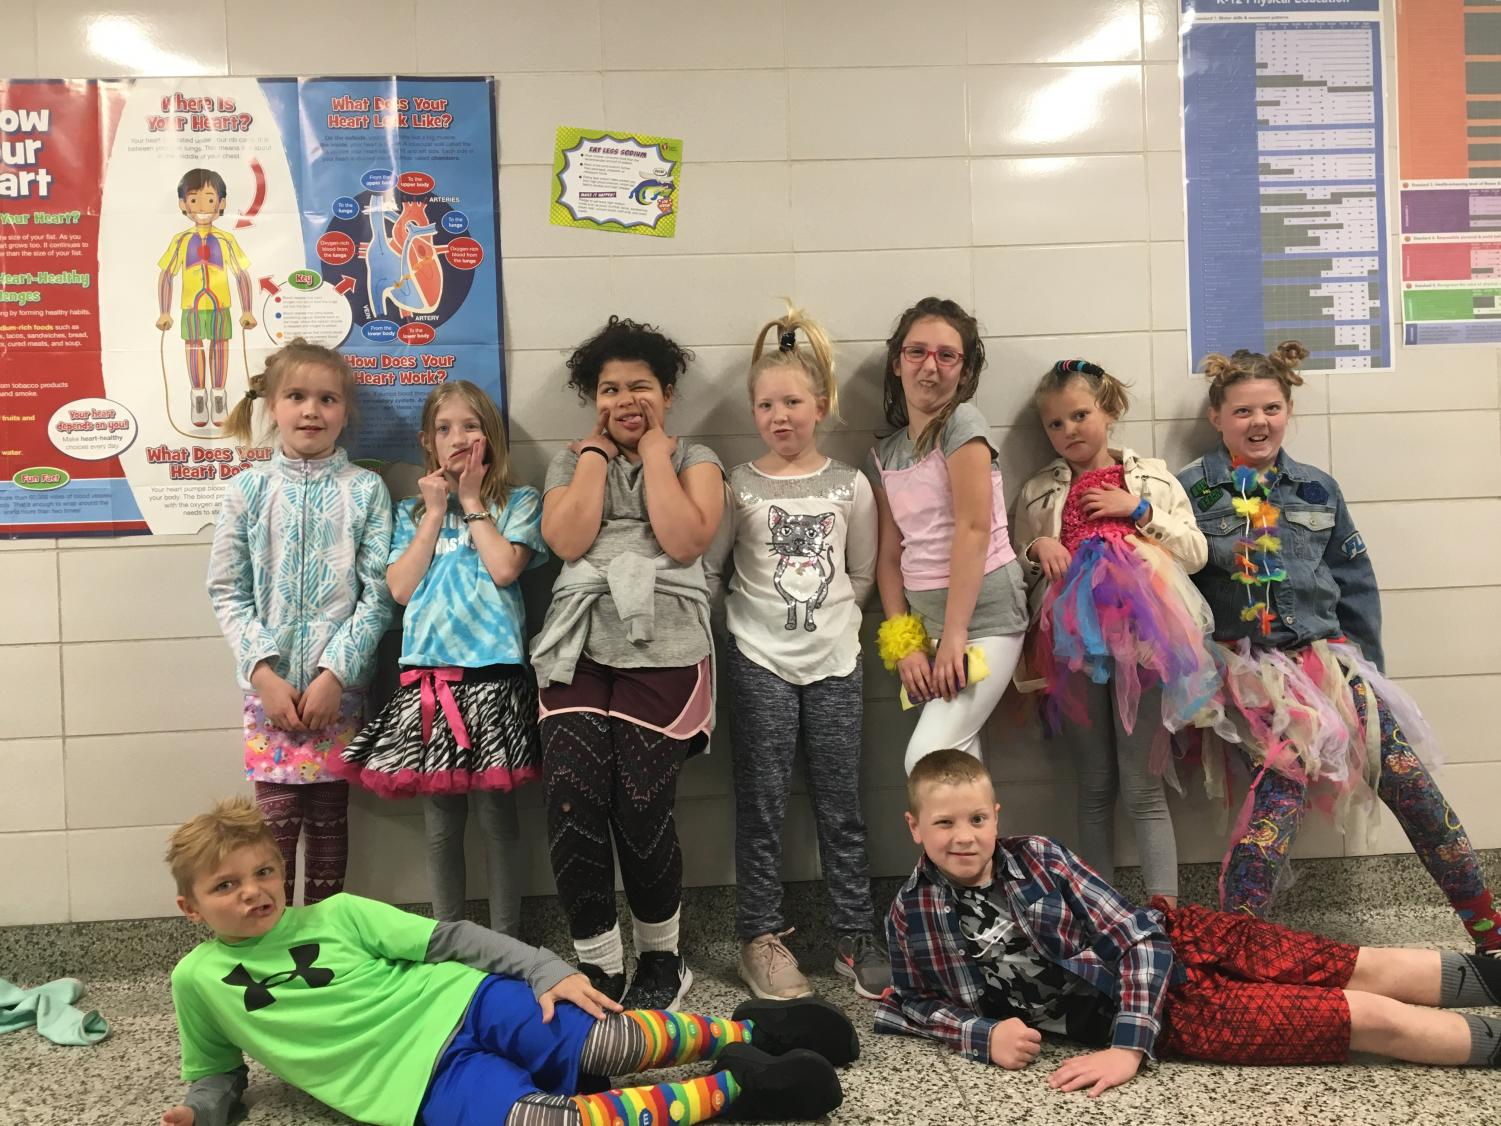 The+wackiest+of+kids+show+their+school+support+by+participating+in+wacky+Wednesday.